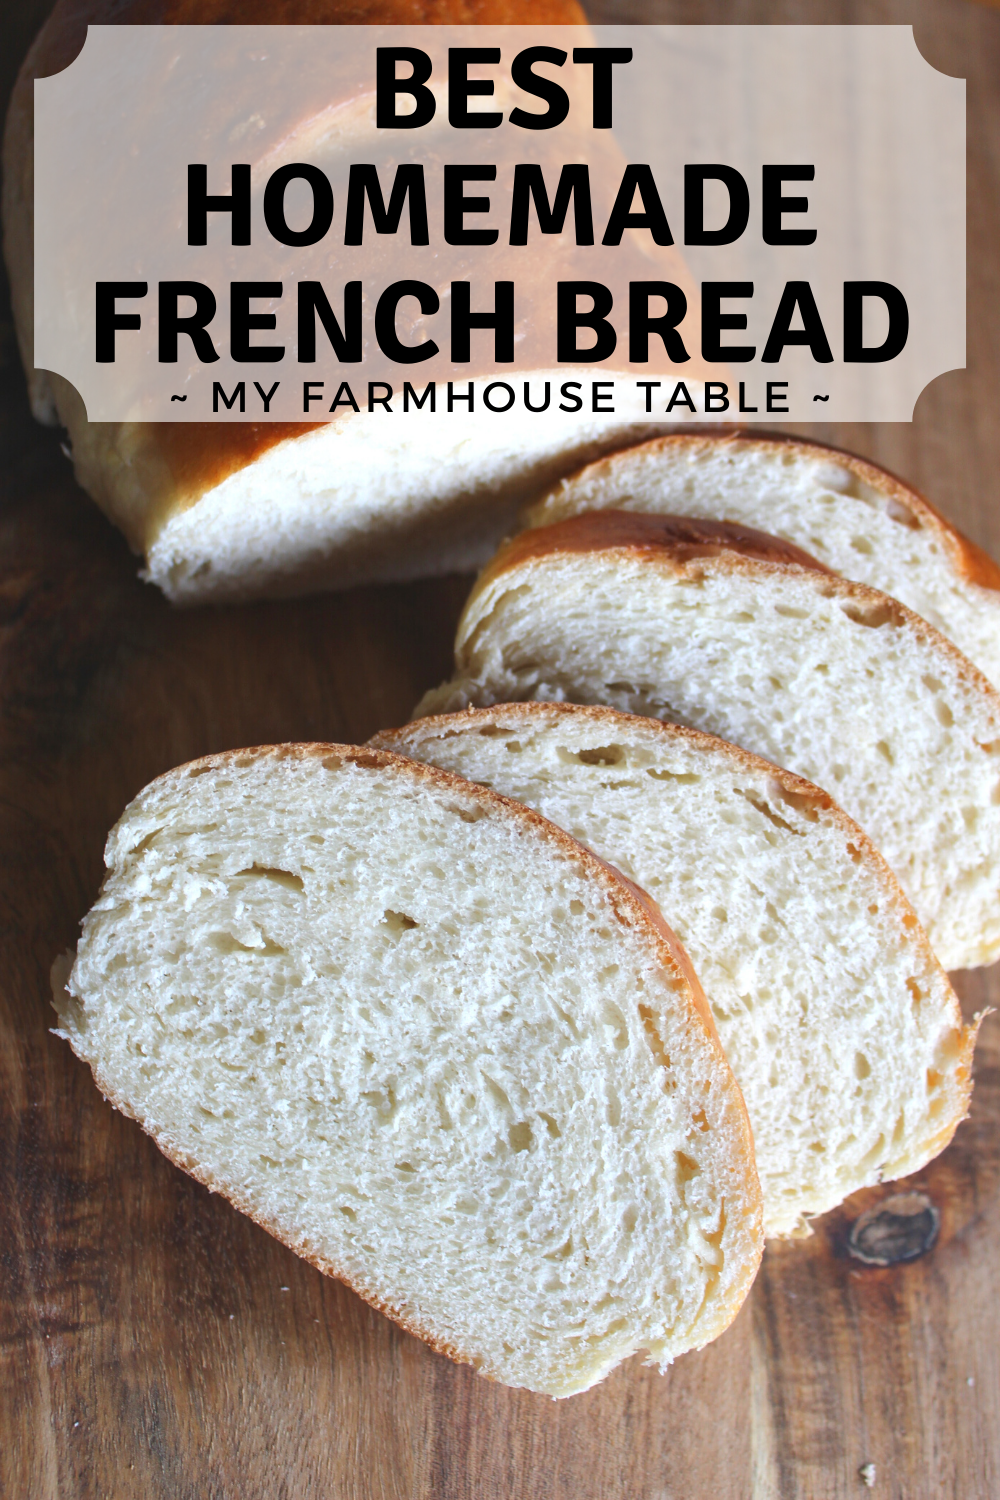 Best Homemade French Bread Recipe Easy and Simple Three Loaves Soft and Delicious Bread Great for Sandwiches or Toast My Farmhouse Table